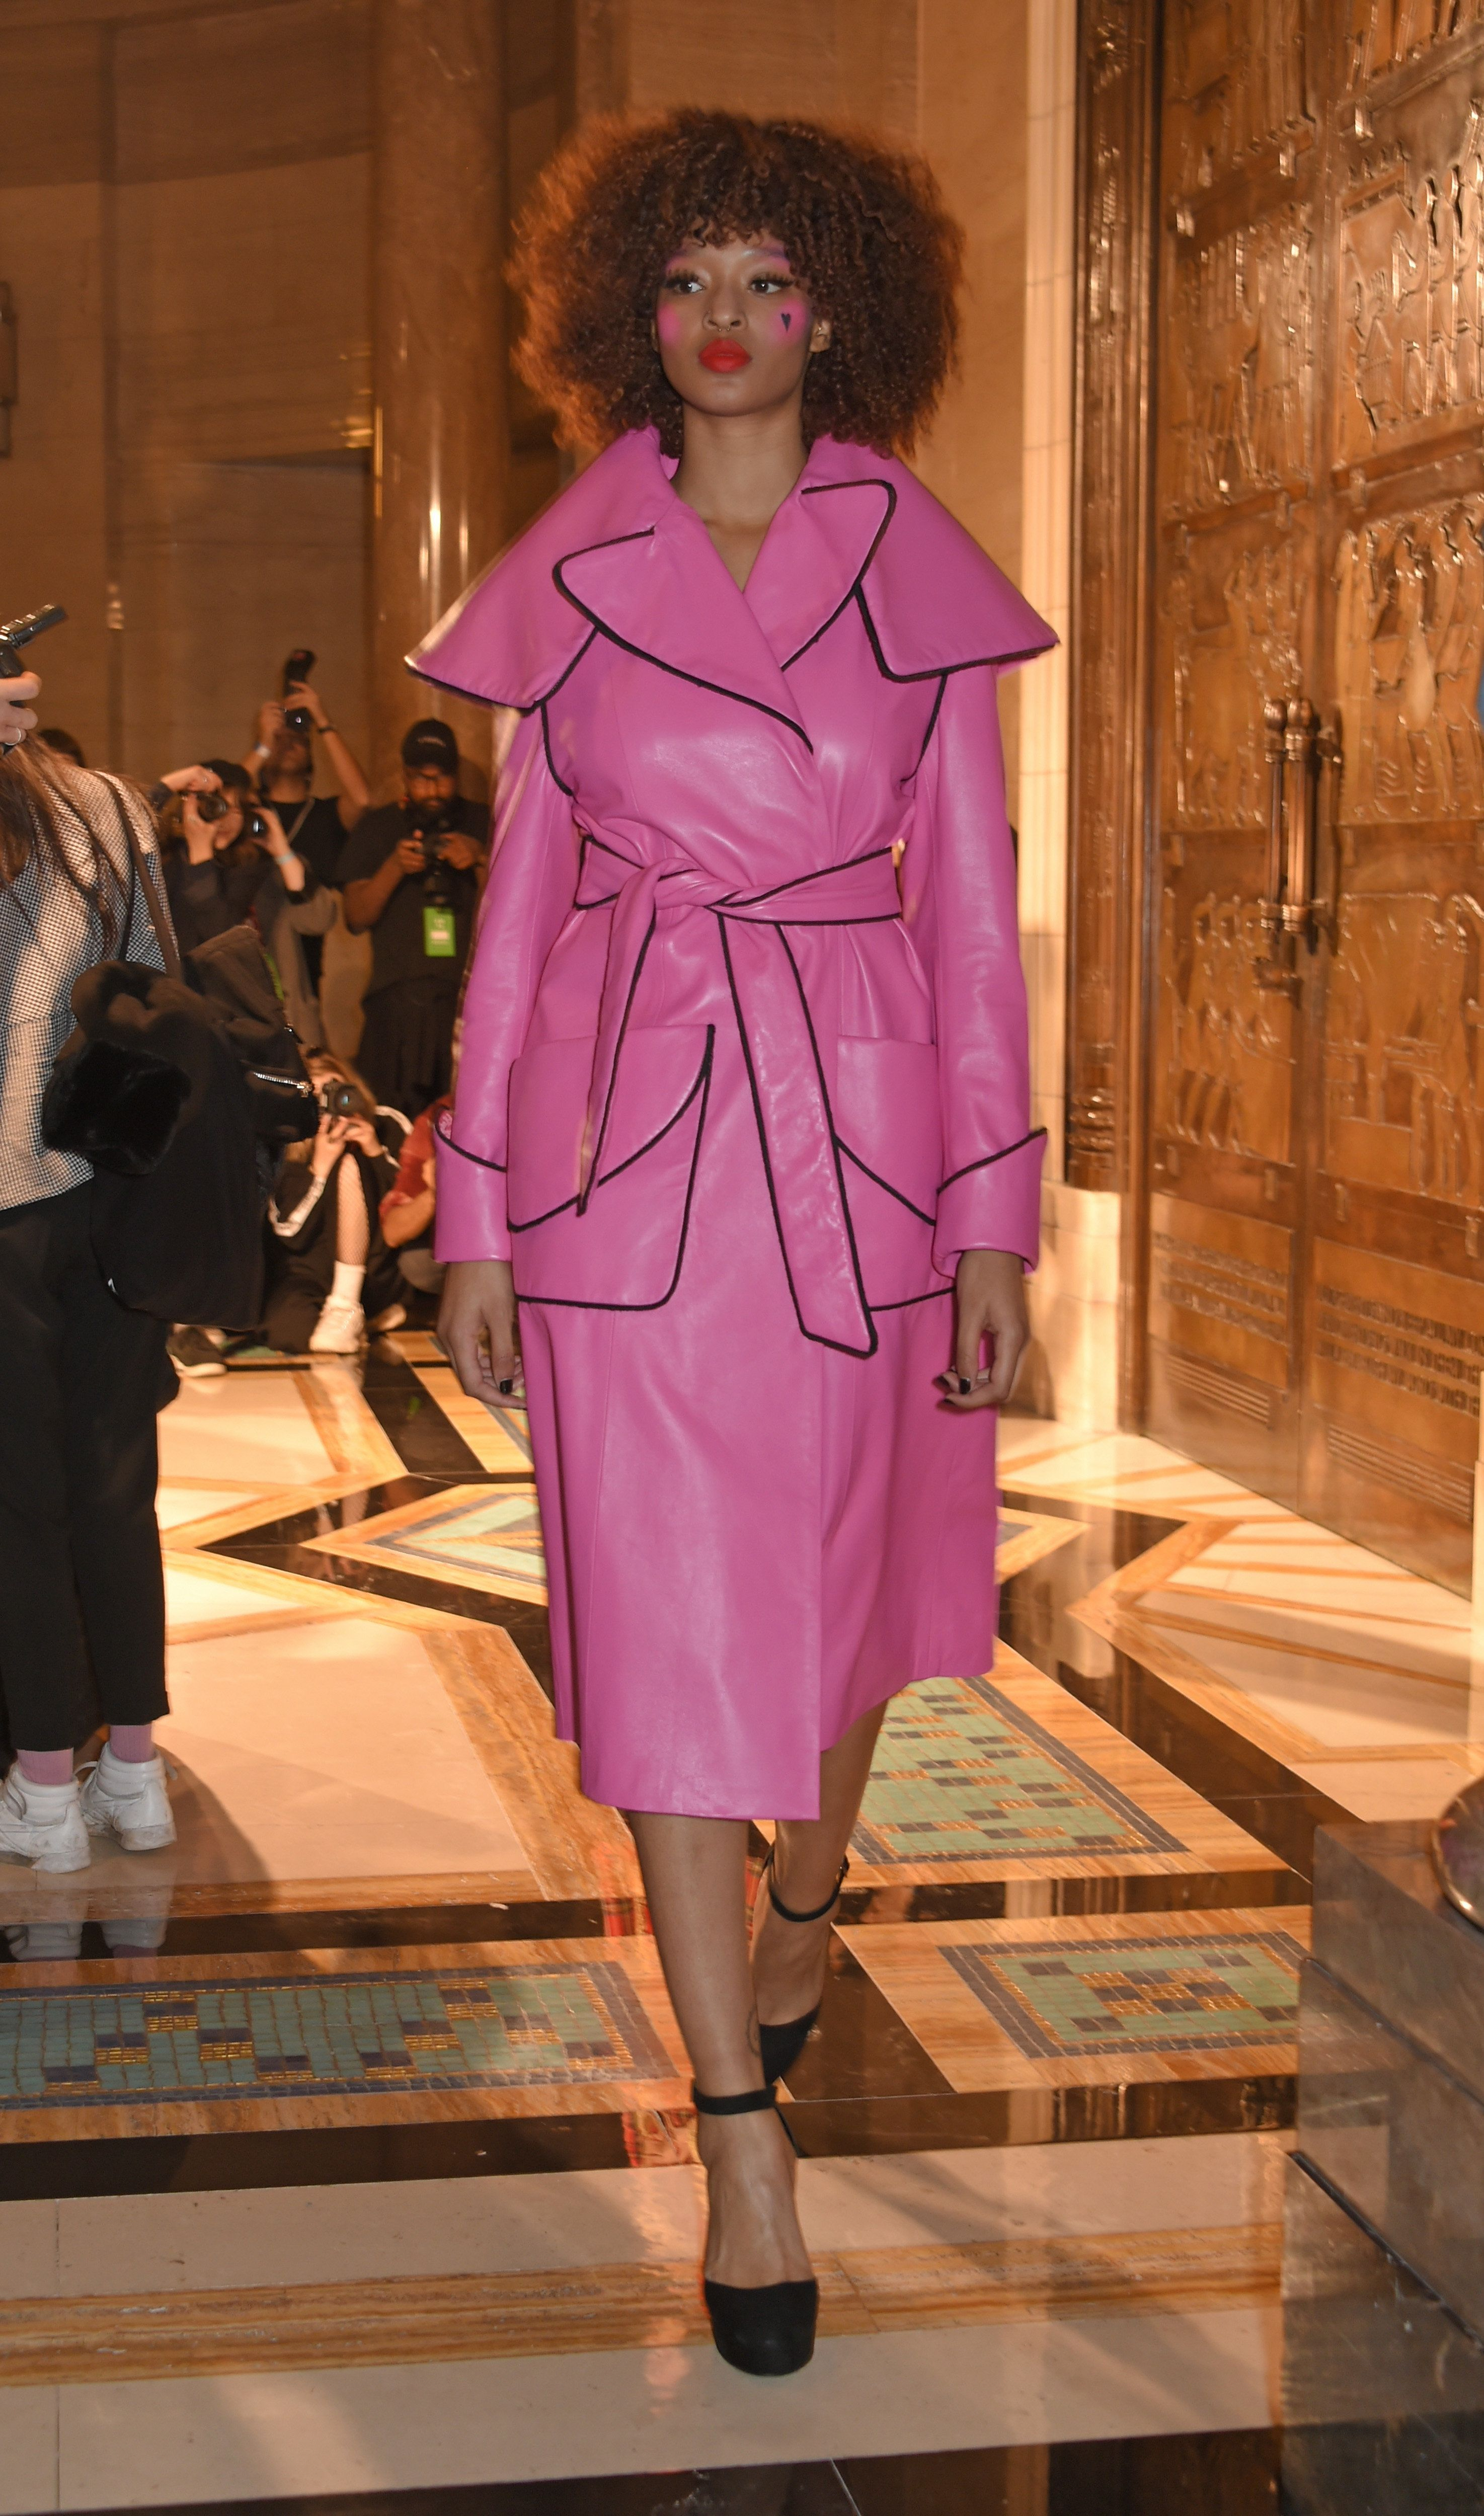 Pam Hogg showed us how it's done with this hot pink leather coat during her show this London Fashion Week.